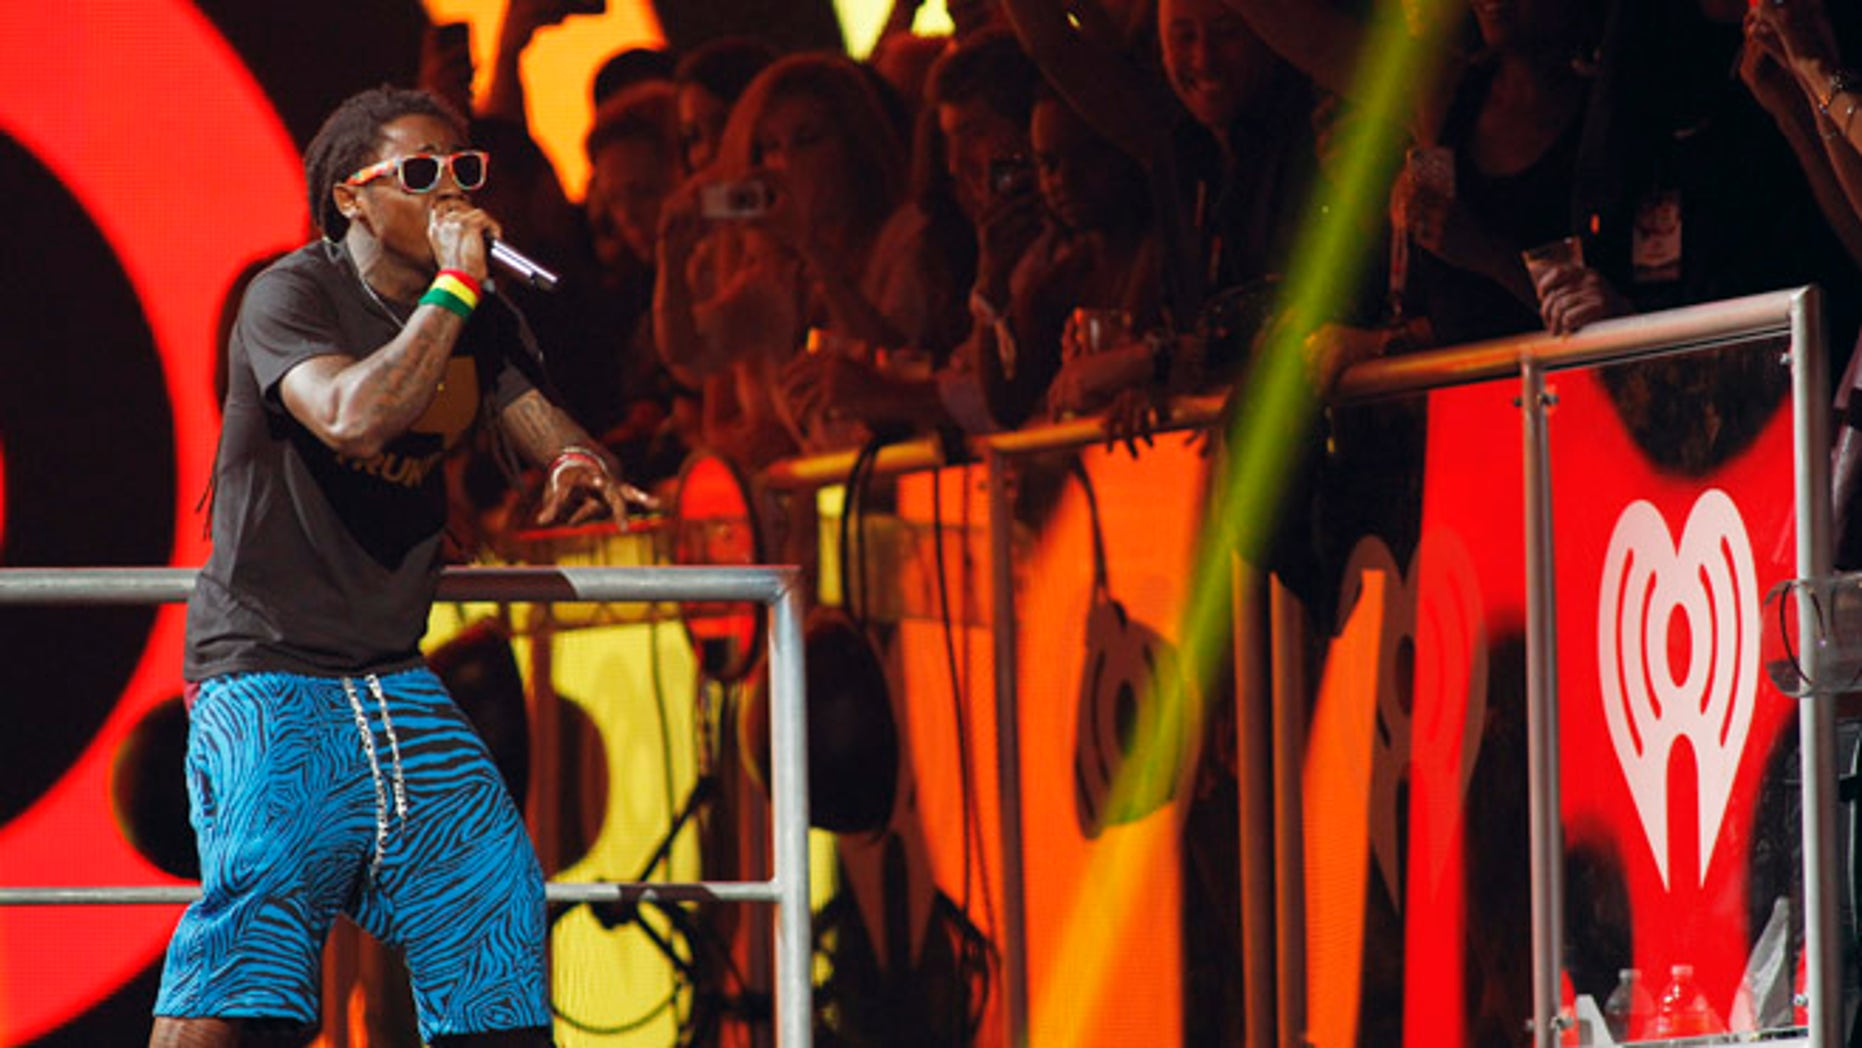 Sept. 21, 2012: Rapper Lil Wayne performs during the 2012 iHeart Radio Music Festival at the MGM Grand Garden Arena in Las Vegas, Nevada.